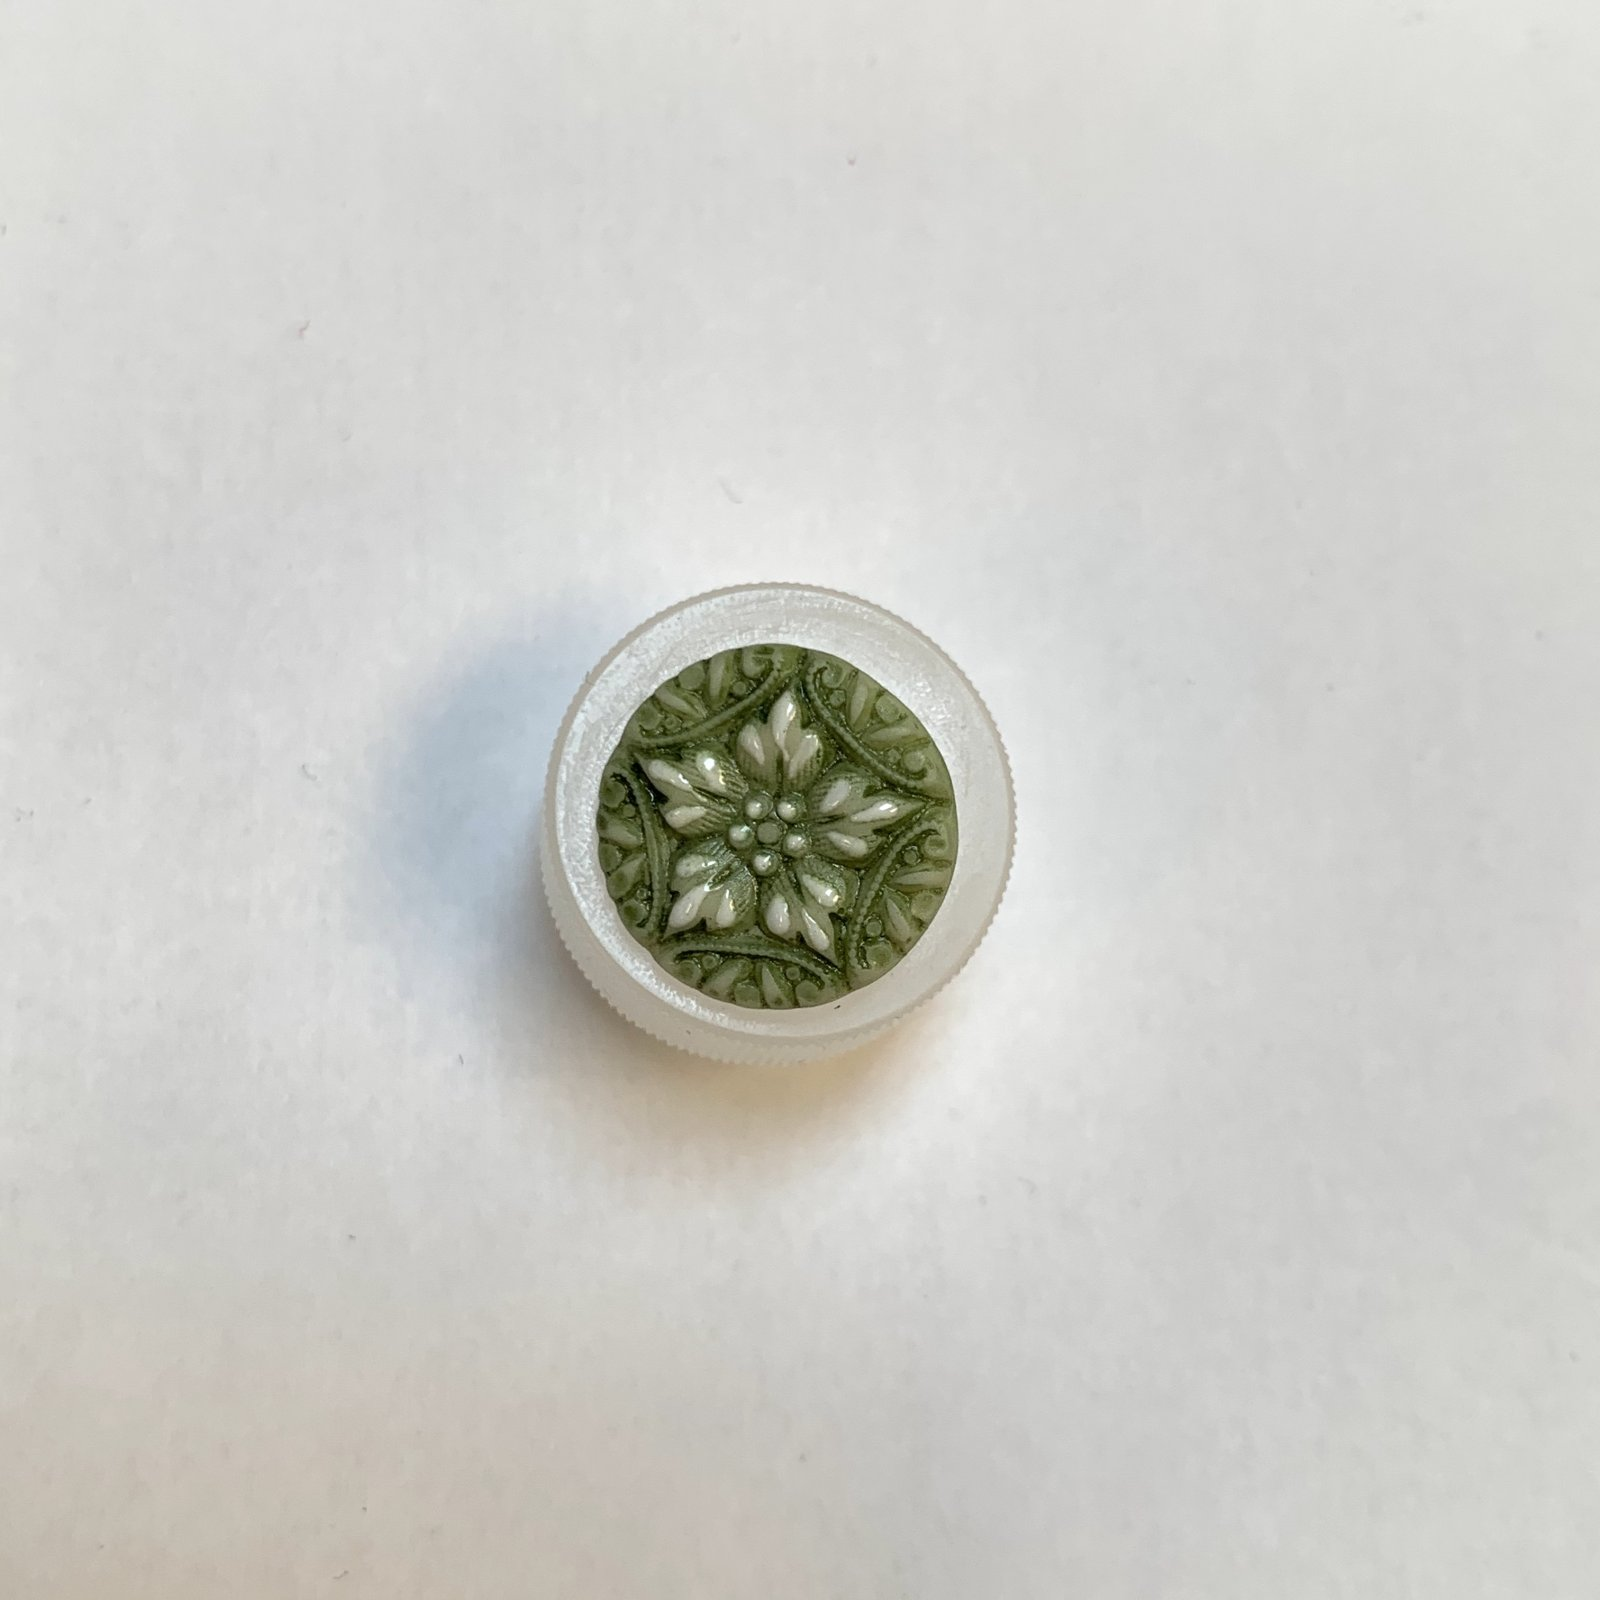 Green Flower Porcelain Button 5/8 Inch XB-858